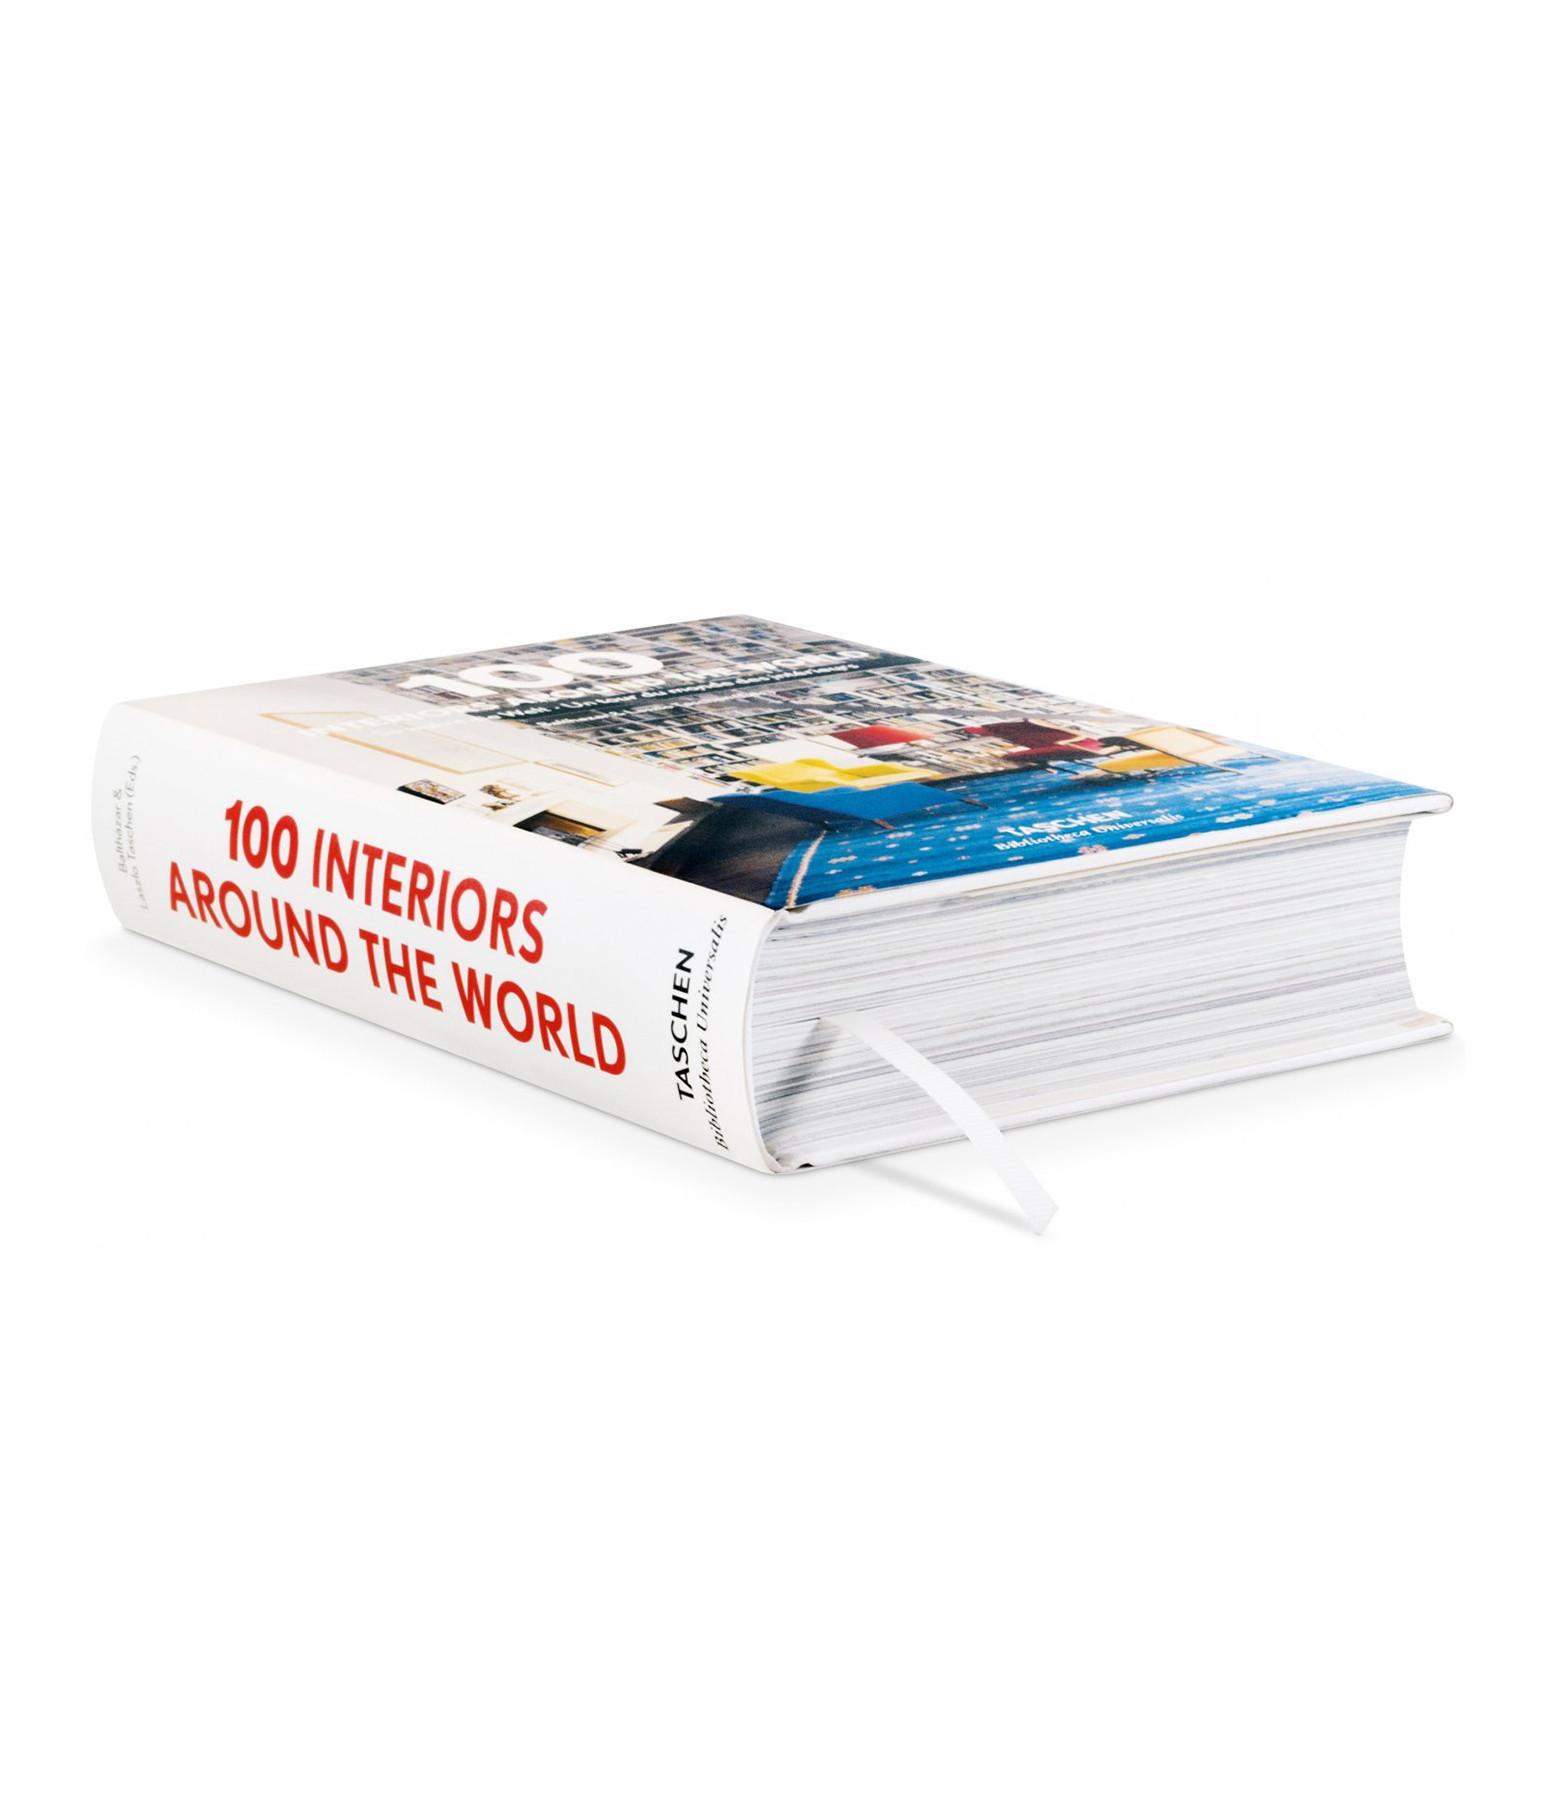 TASCHEN - Livre 100 Interiors Around The World